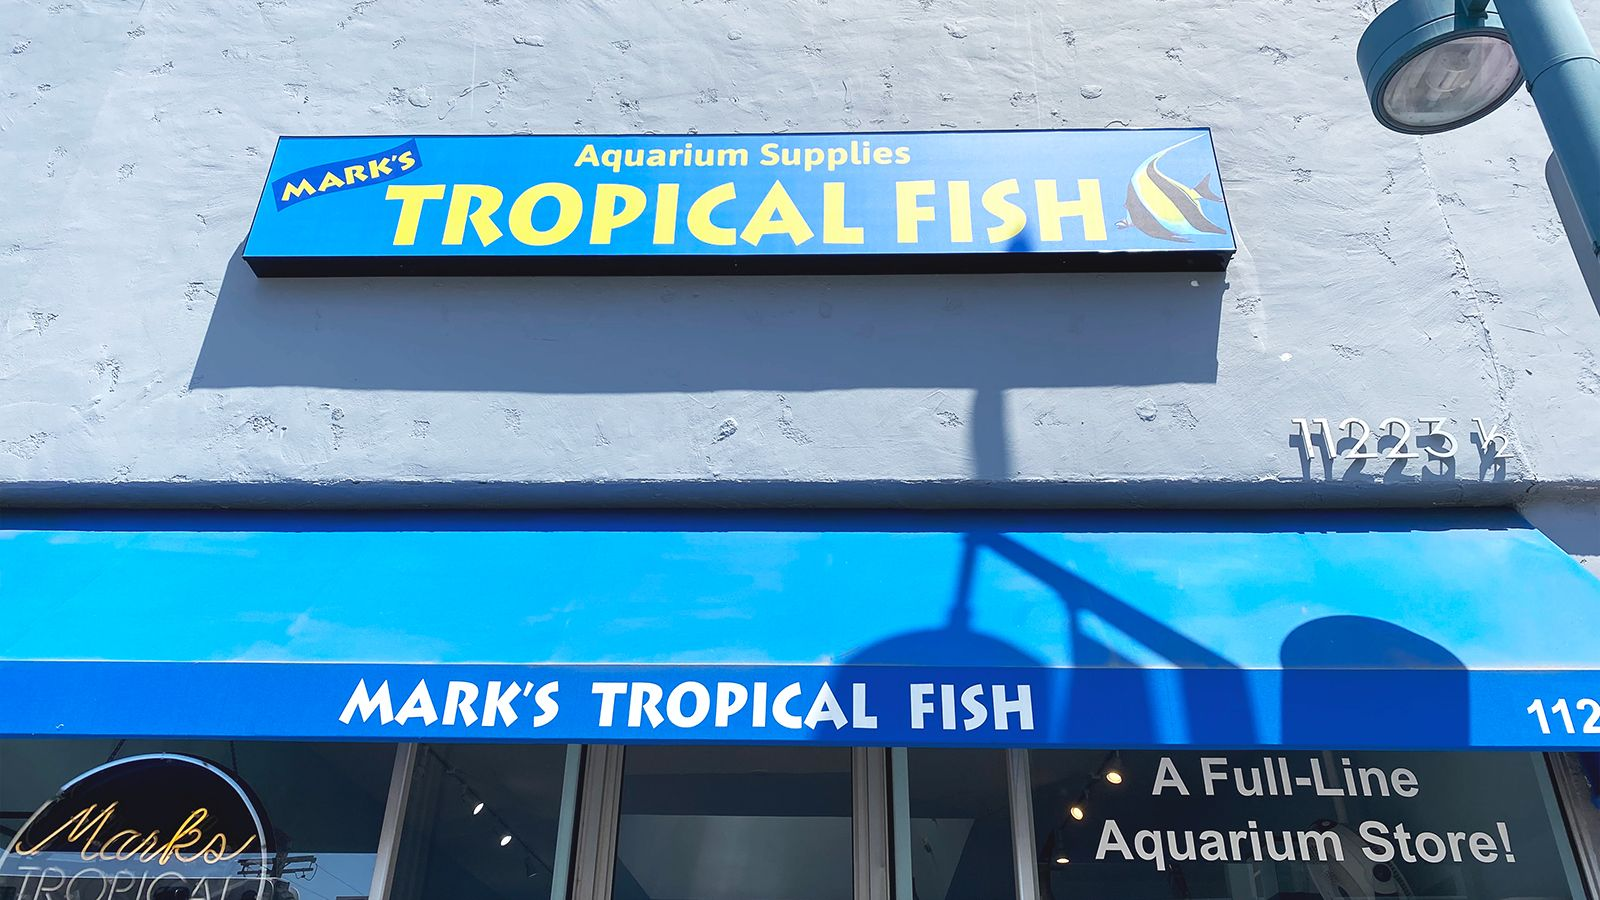 Tropical fish building sign